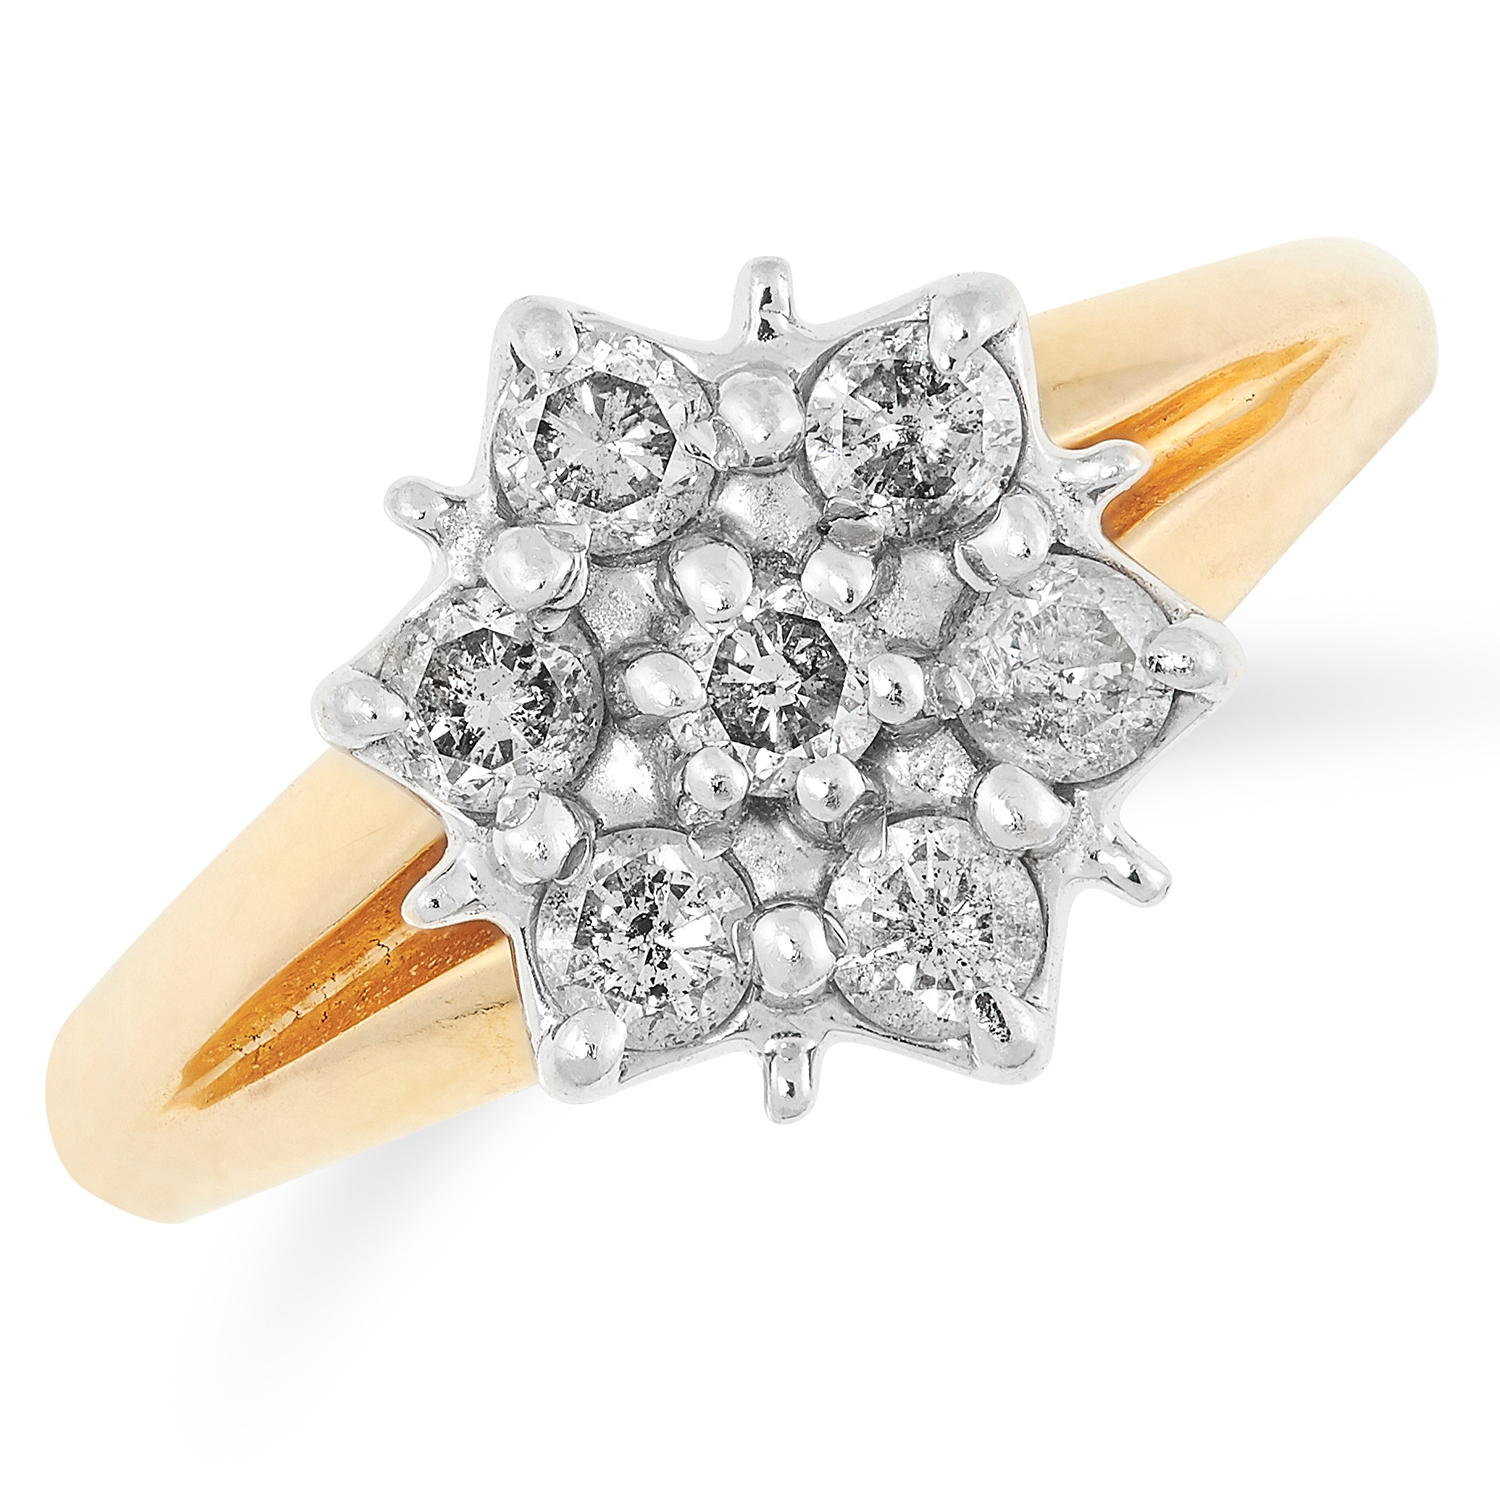 Los 58 - DIAMOND CLUSTER RING set with round cut diamonds, size L / 6, 3.7g.